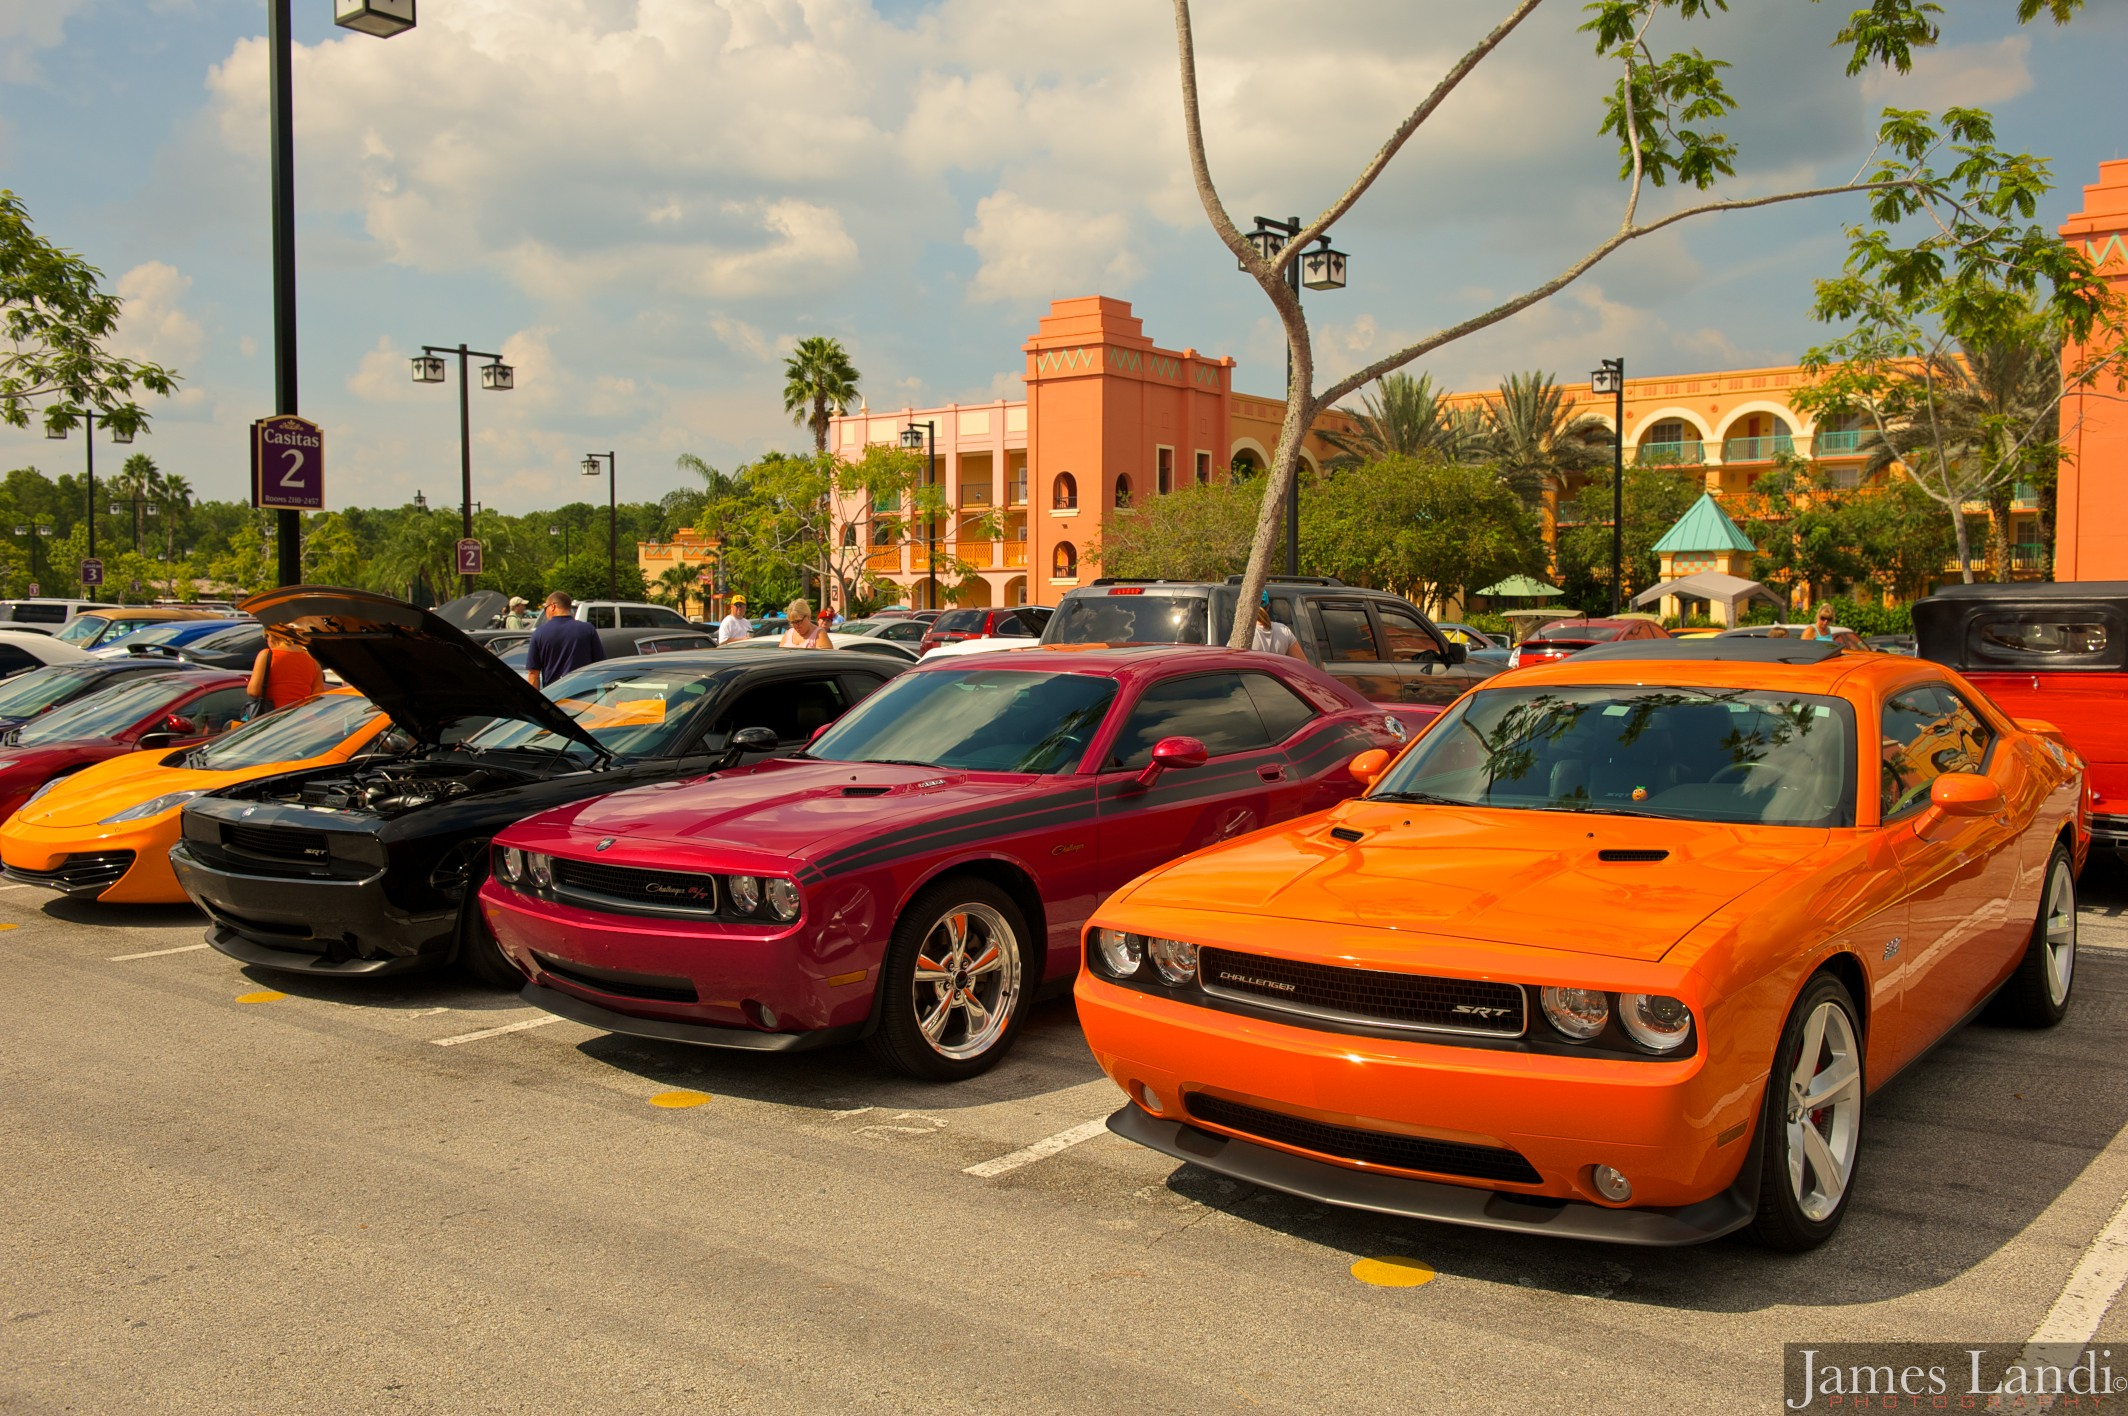 <a class='Imglink' href='#'>Dream Car Weekend at Disney</a>